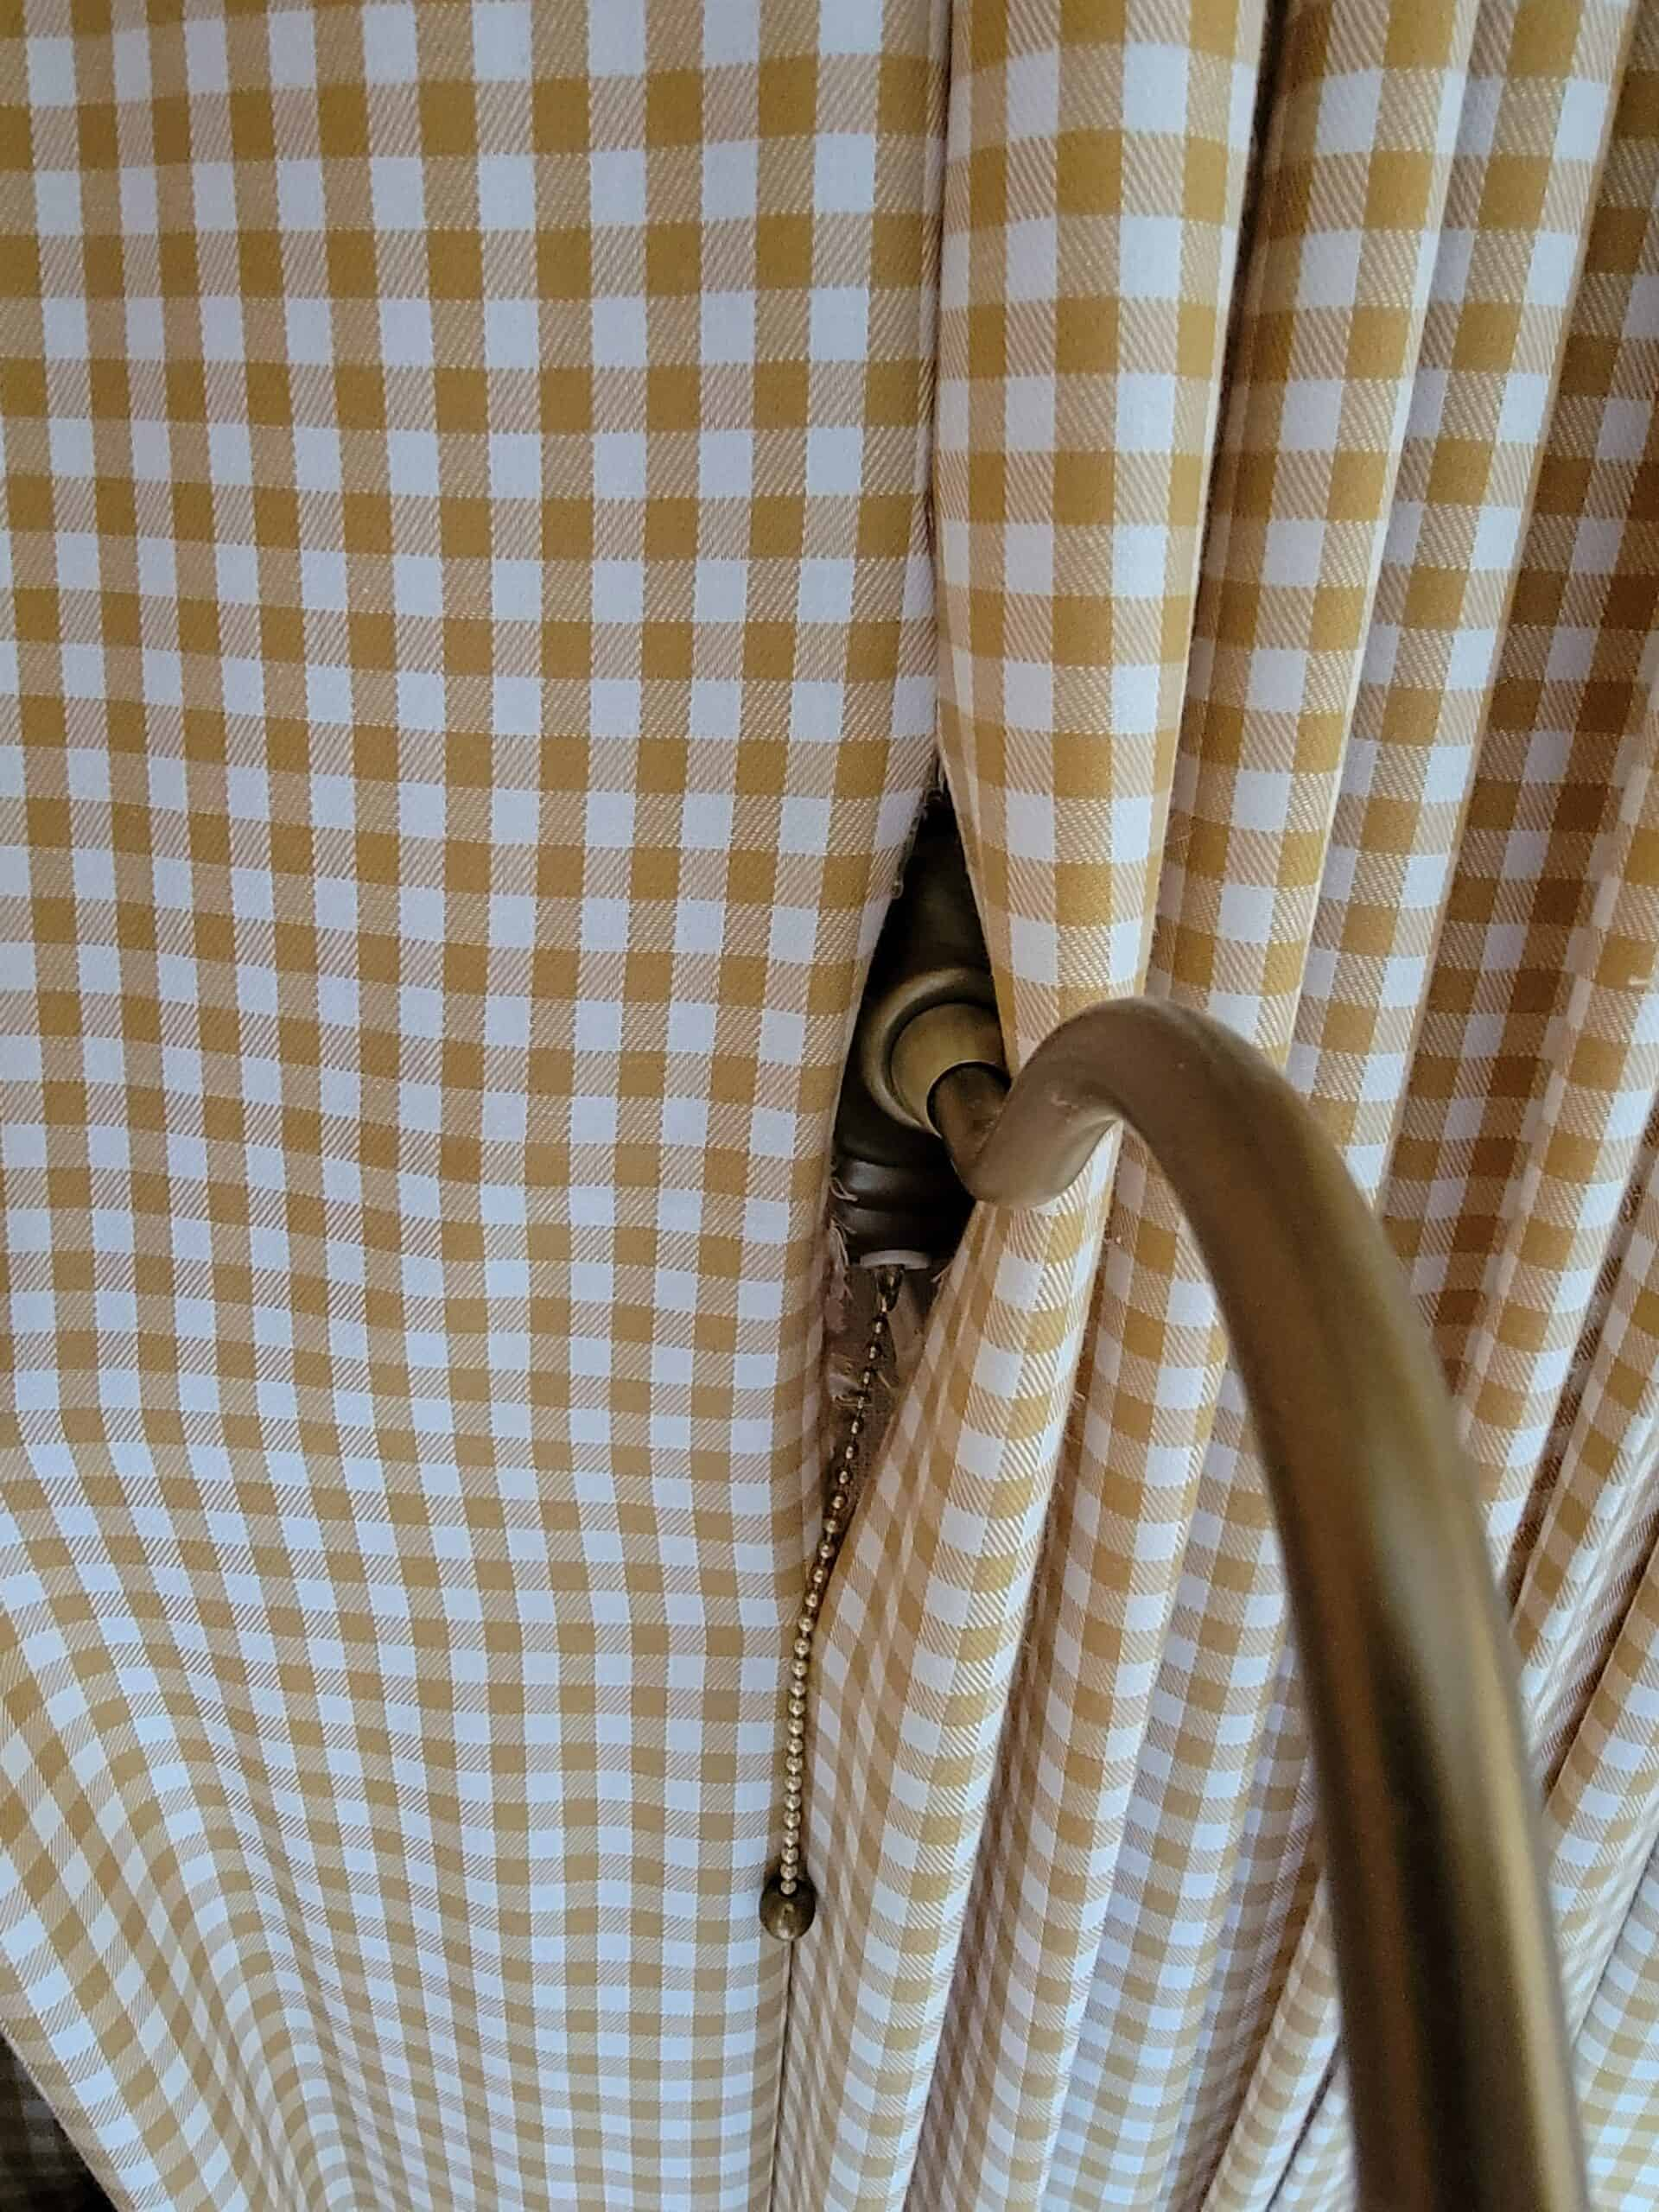 gingham fabric with a sconce peeking through